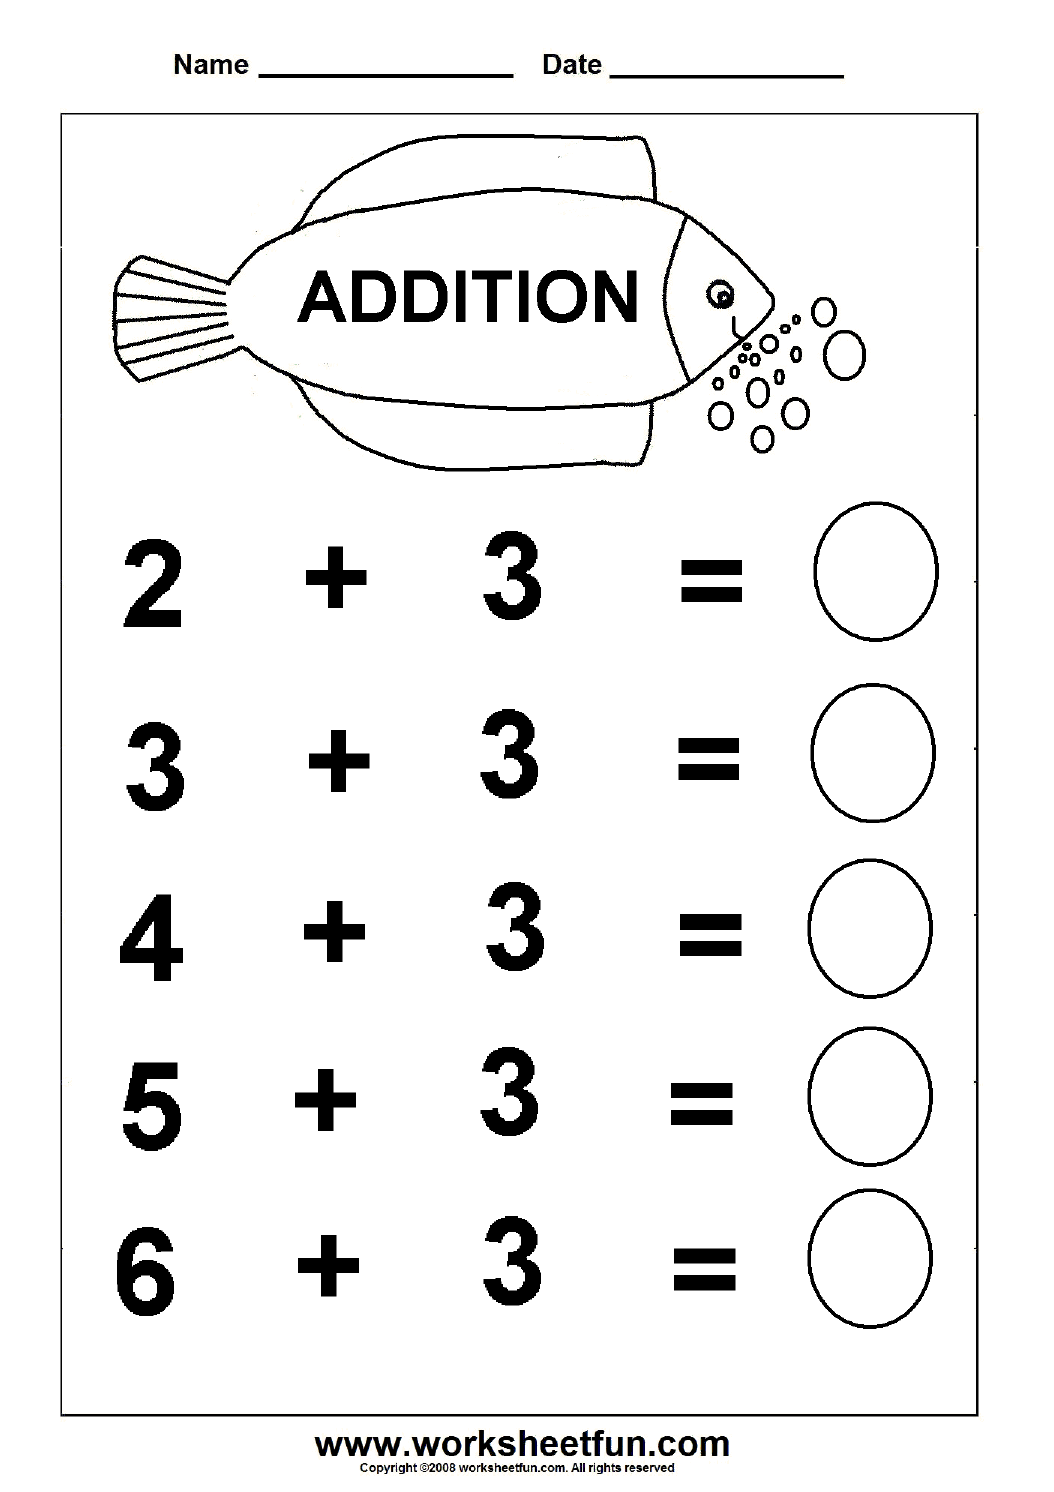 Worksheet Simple Addition Math Worksheets addition basic facts free printable worksheets beginner 6 kindergarten worksheets